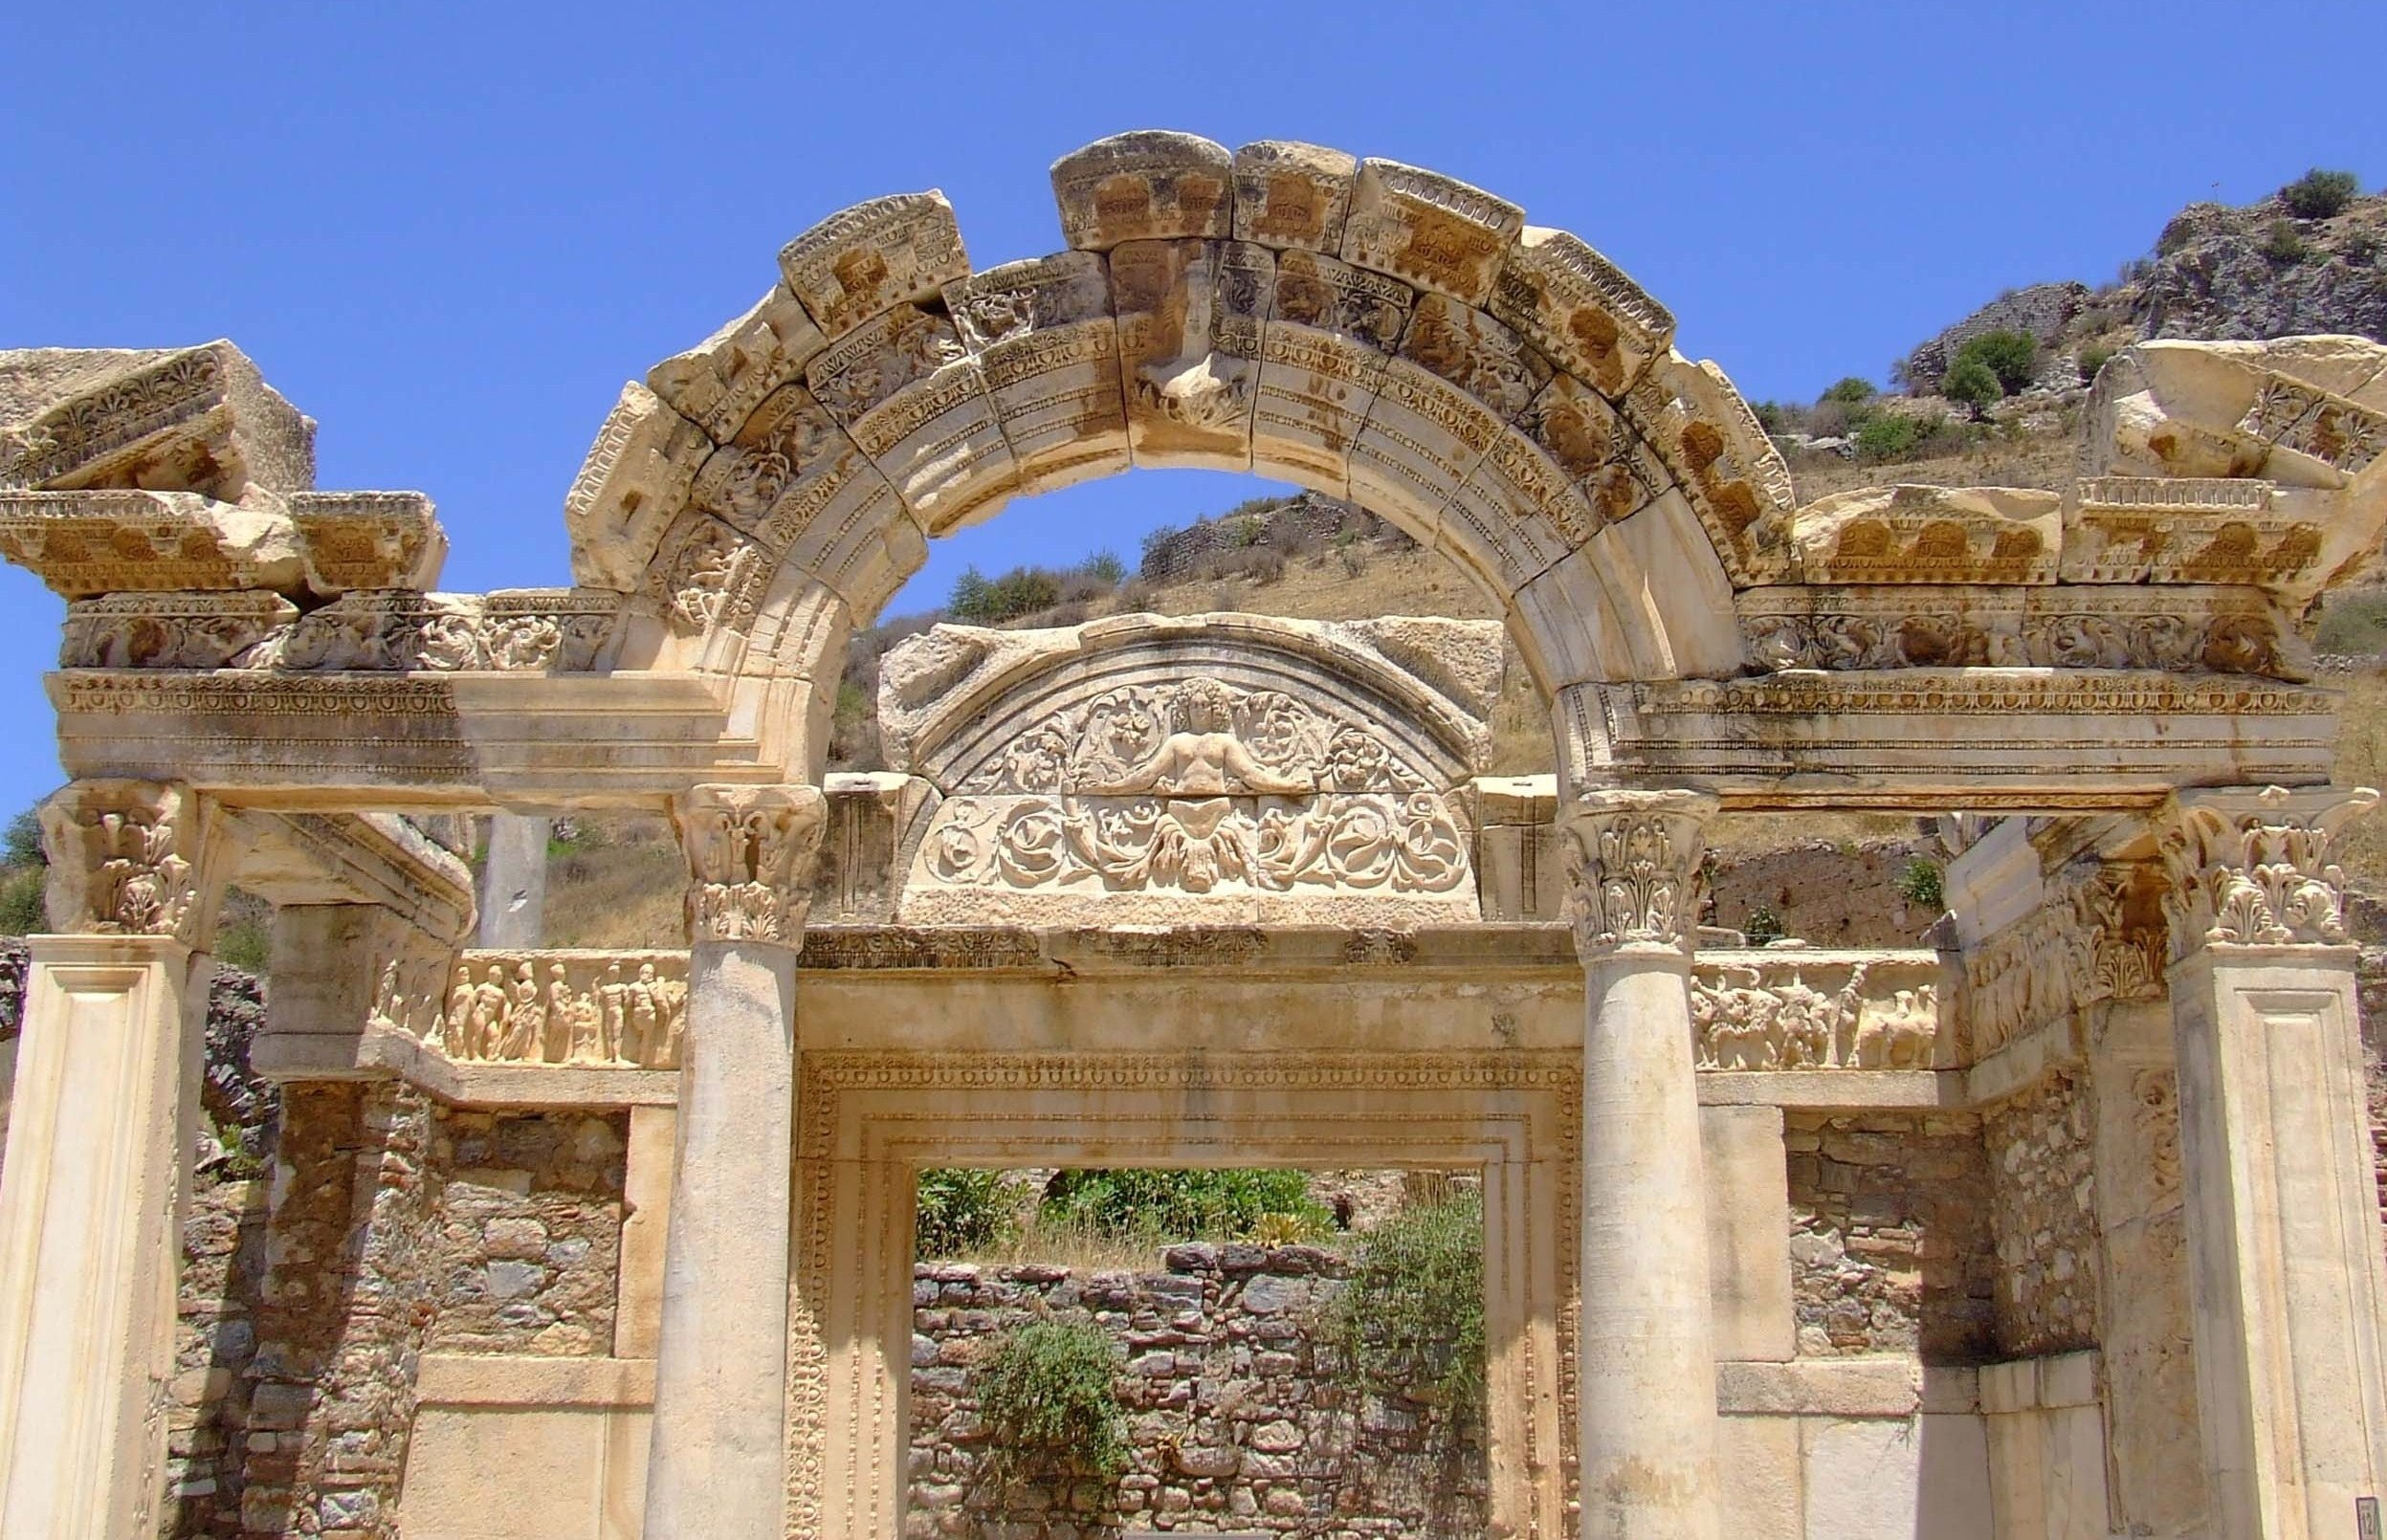 File:Temple of Hadrian Ephesus.JPG